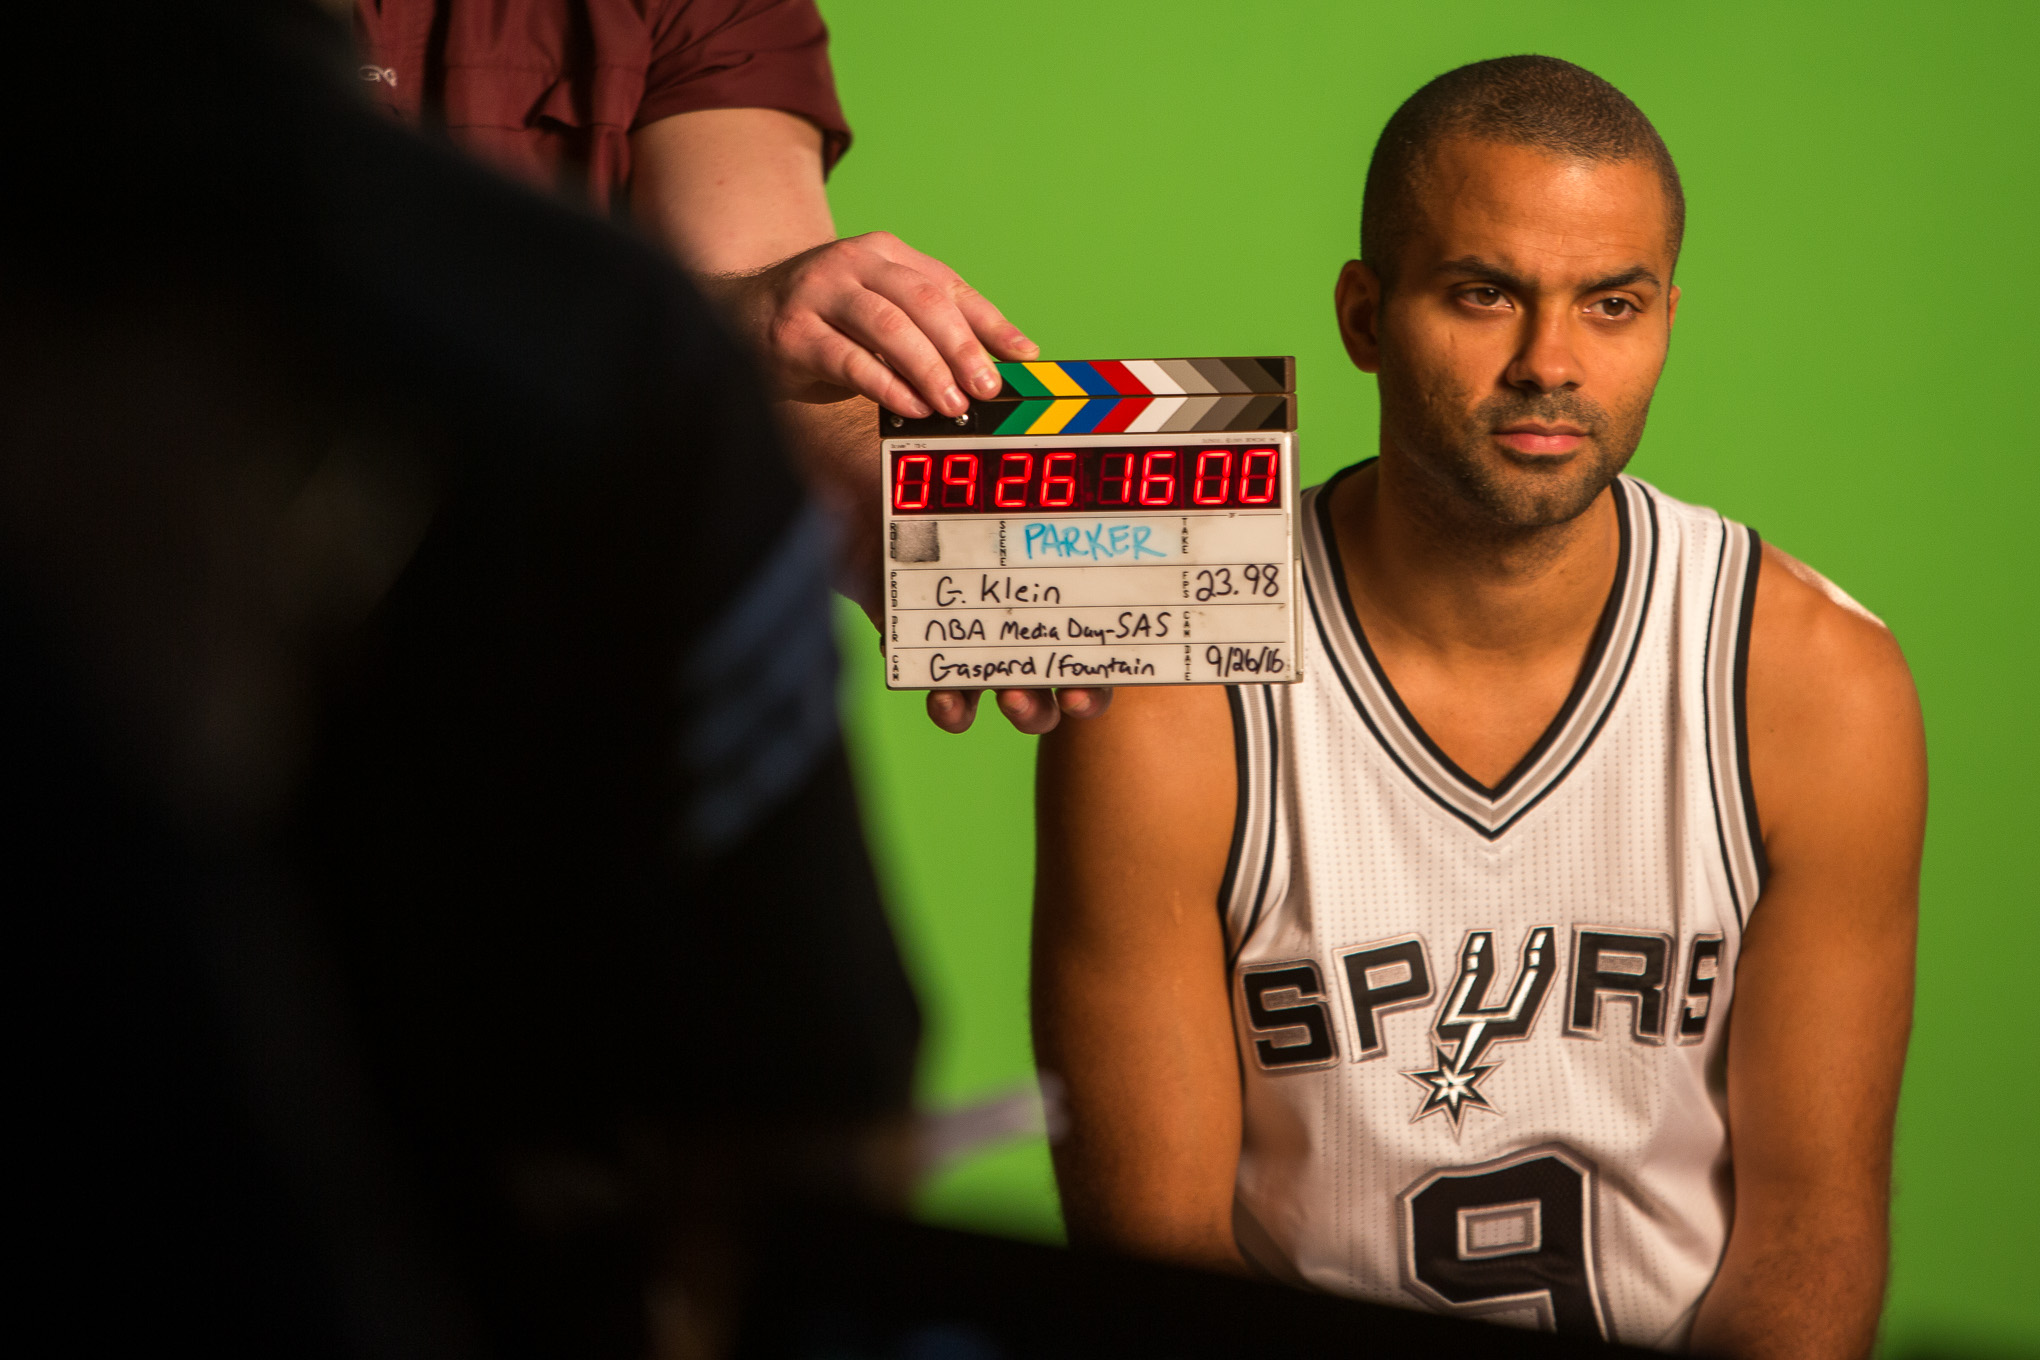 San Antonio Spur Guard Tony Parker prepares for a video interview during media day. Photo by Scott Ball.